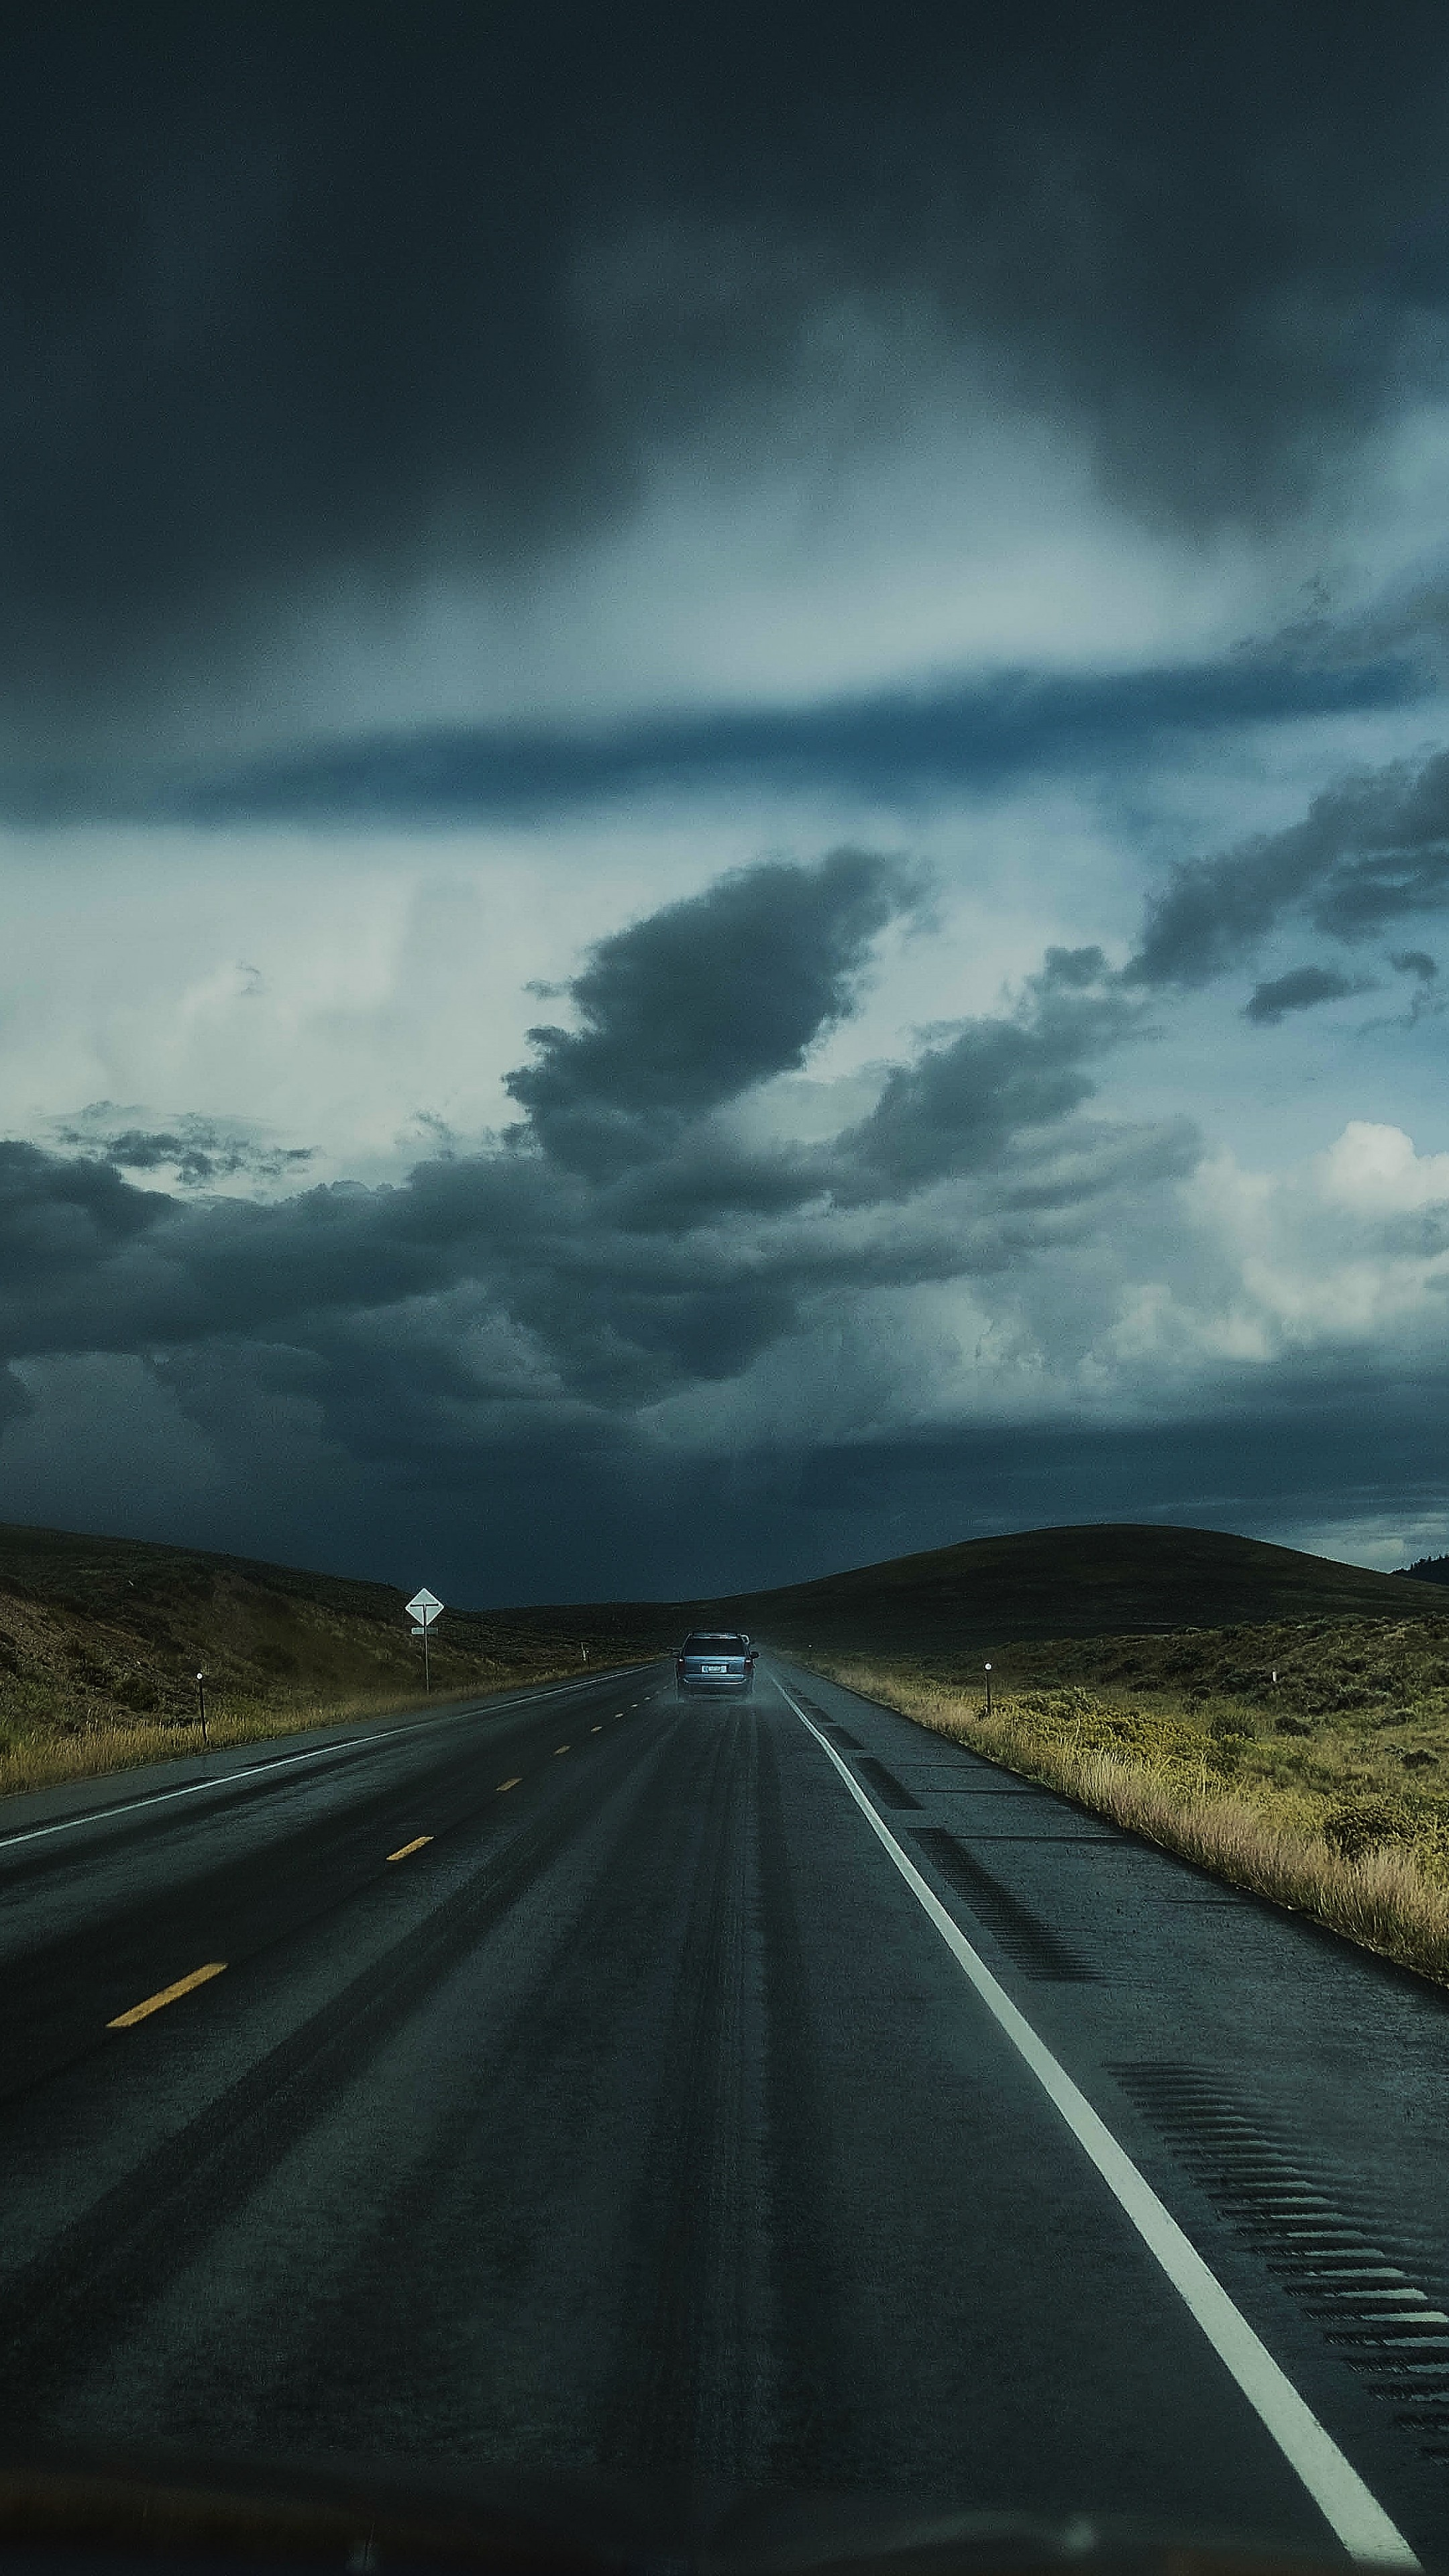 Road Clouds Auto Traffic Wallpaper 2160x3840